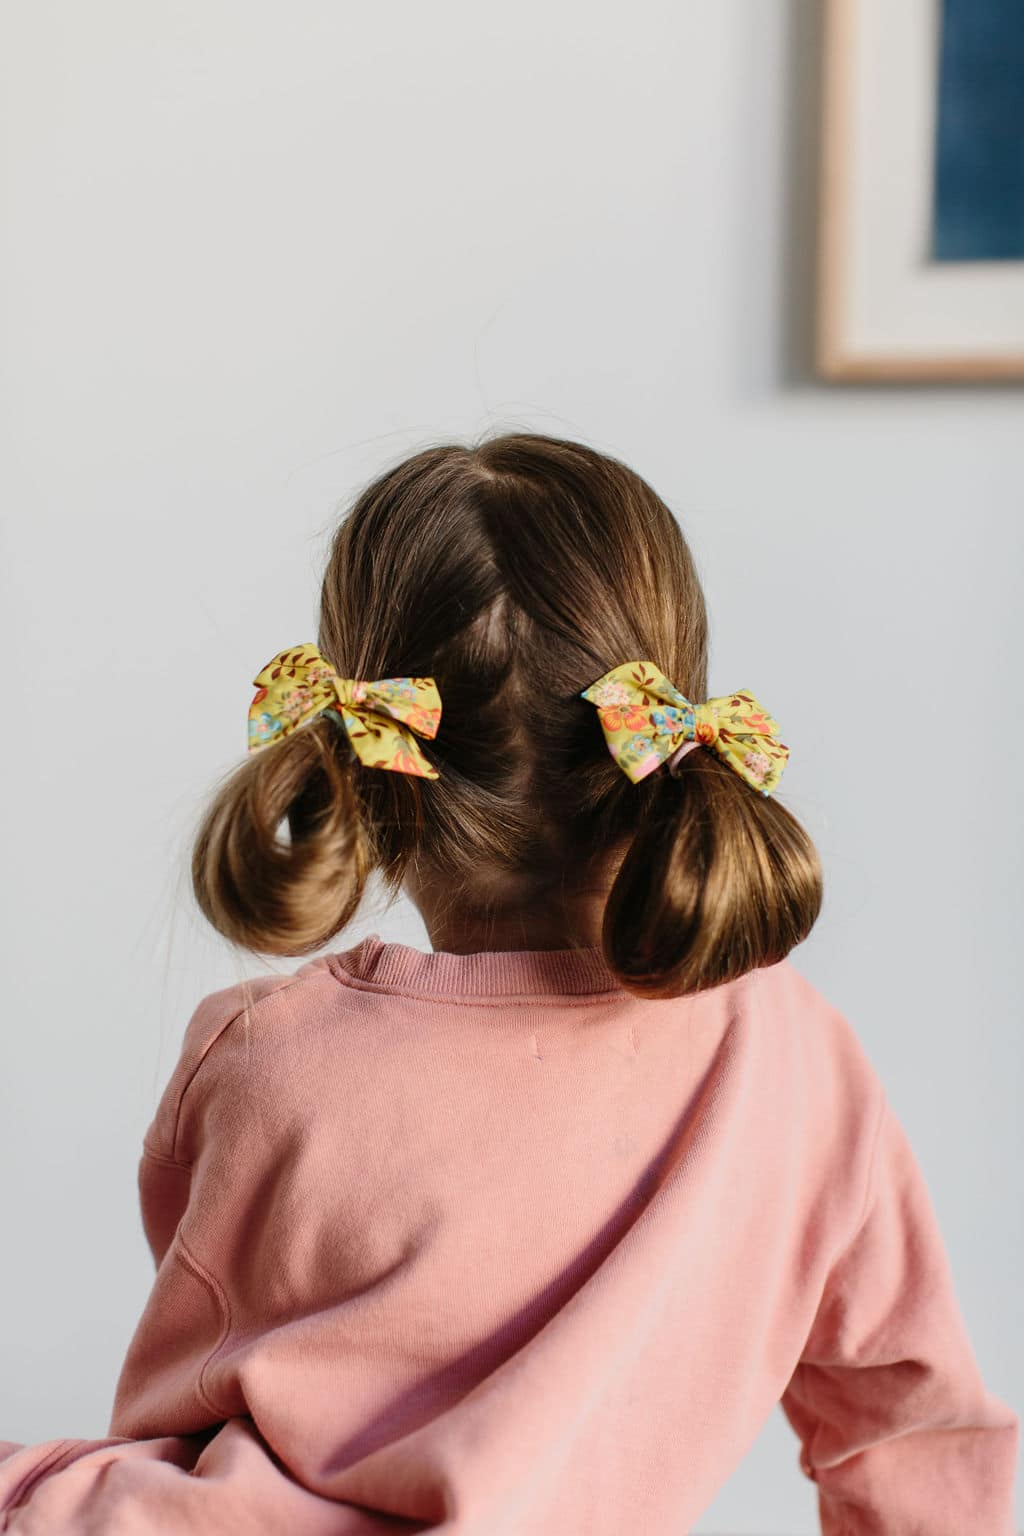 3 Easy Hairstyles For Kids Braids Buns And Wavy Hair The Effortless Chic